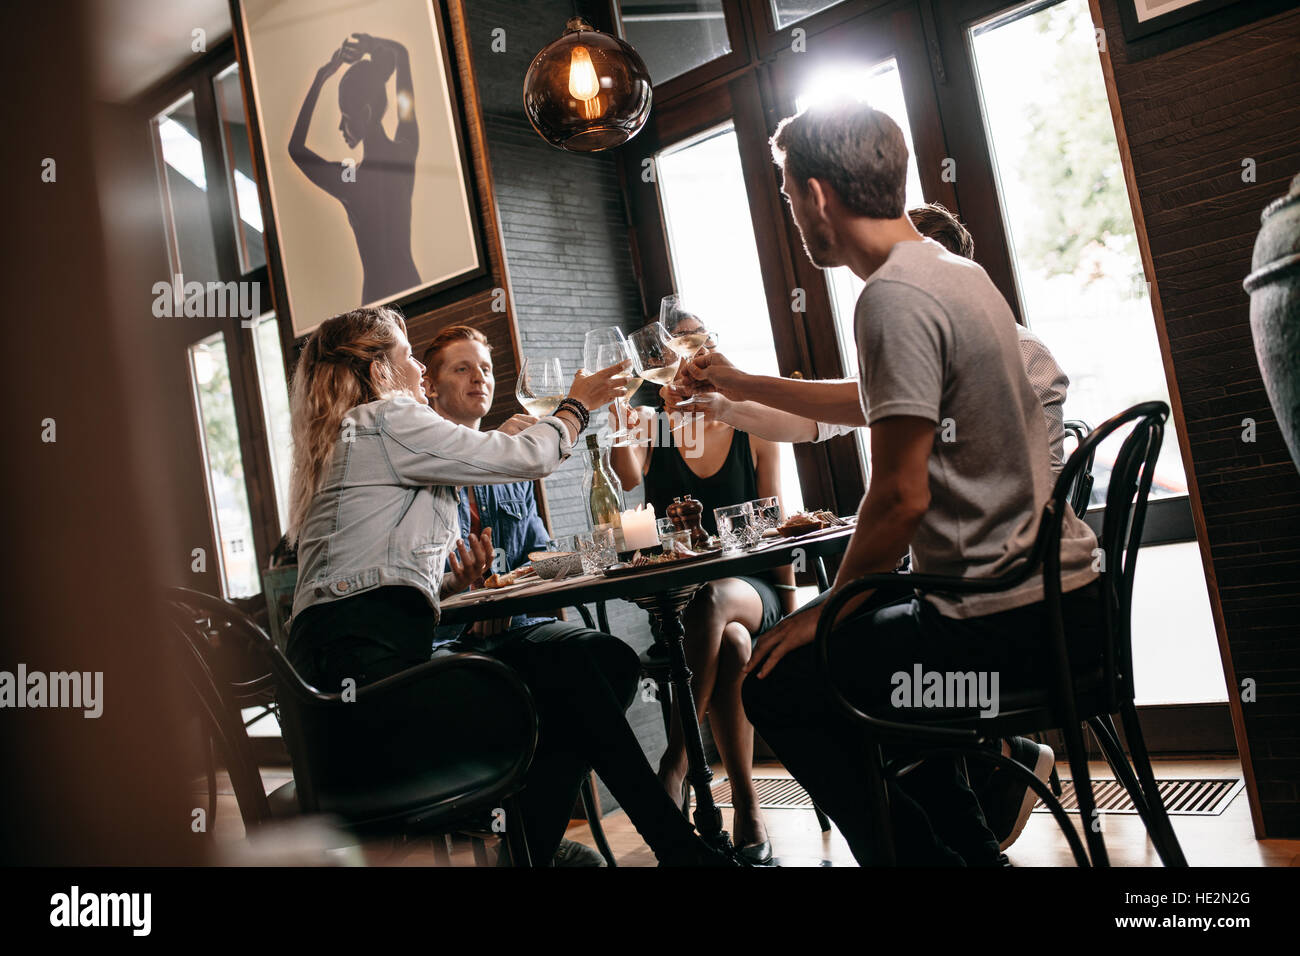 Group of friends toasting wine at restaurant. Young man and woman sitting at table and toasting drinks at cafe. - Stock Image